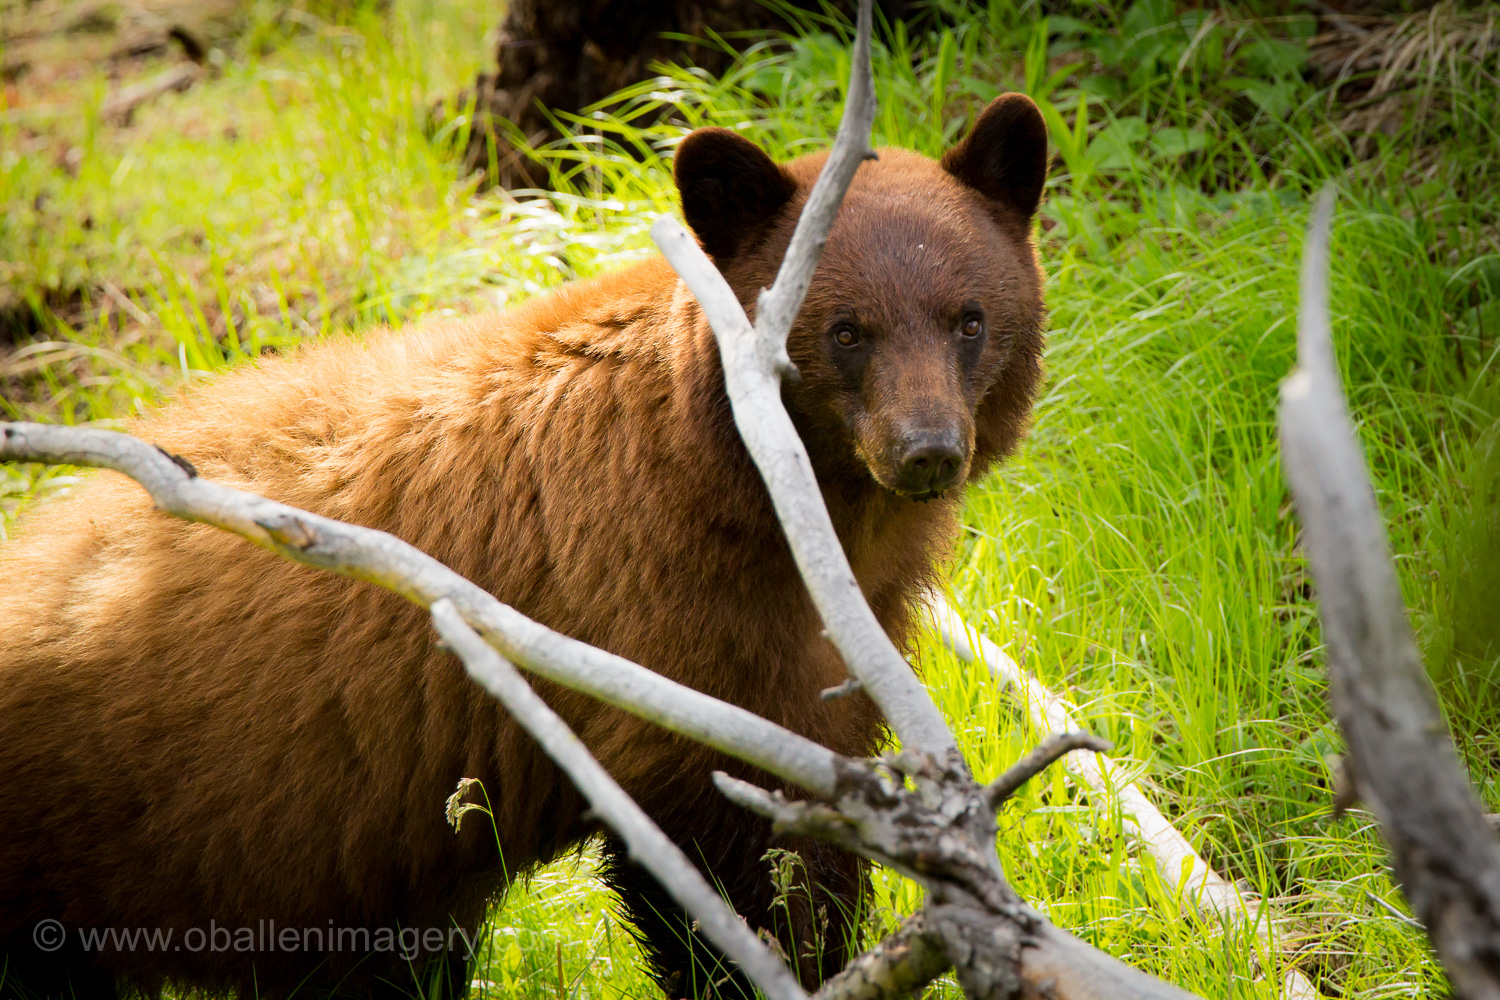 This brown phase of a black bear was located near Tower Falls area. He was a beautiful animal that was enjoying the new spring grass.